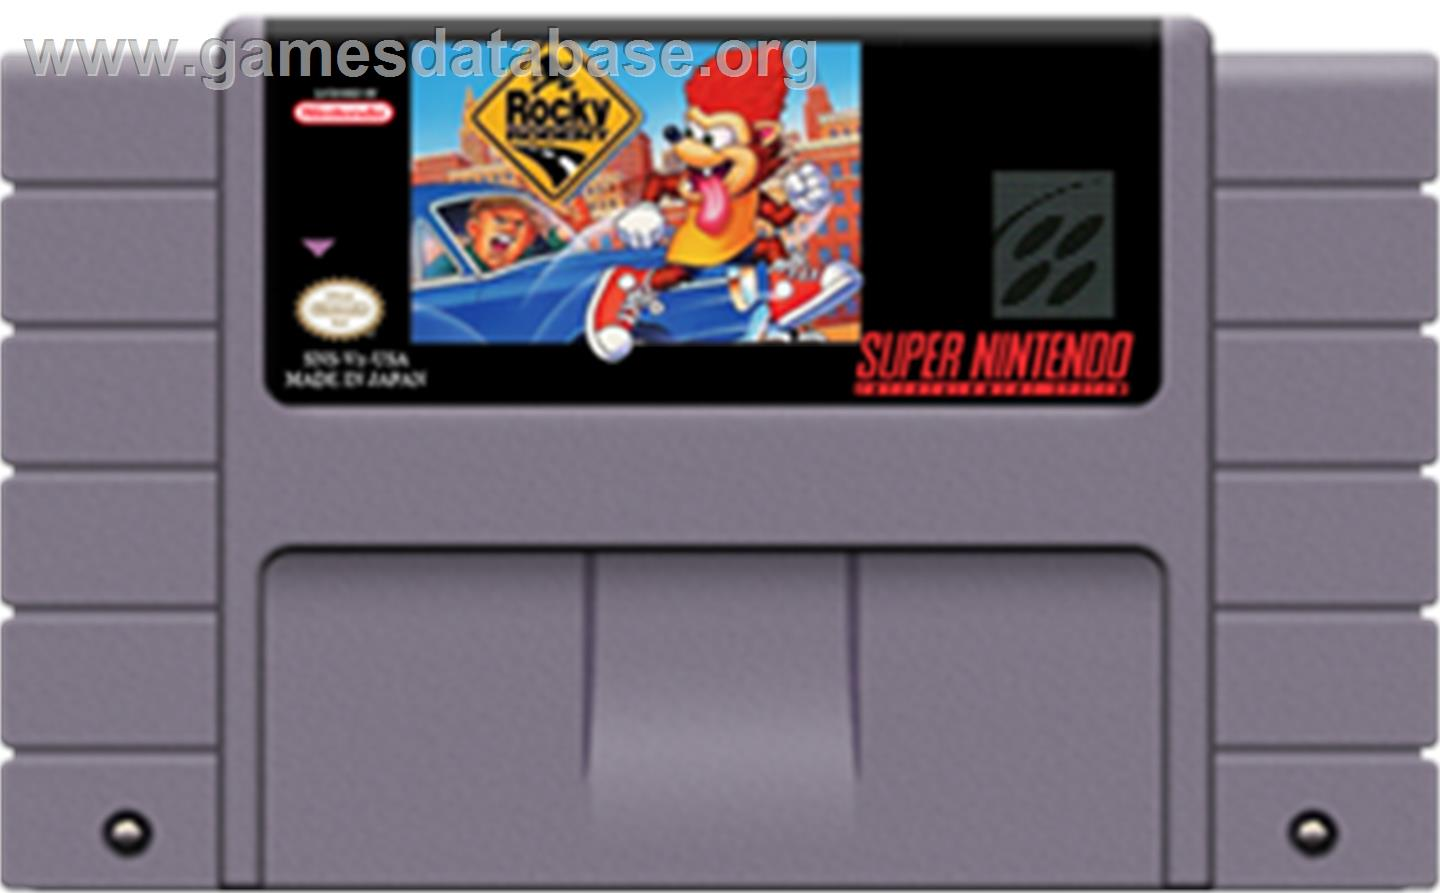 Rocky Rodent - Nintendo SNES - Artwork - Cartridge